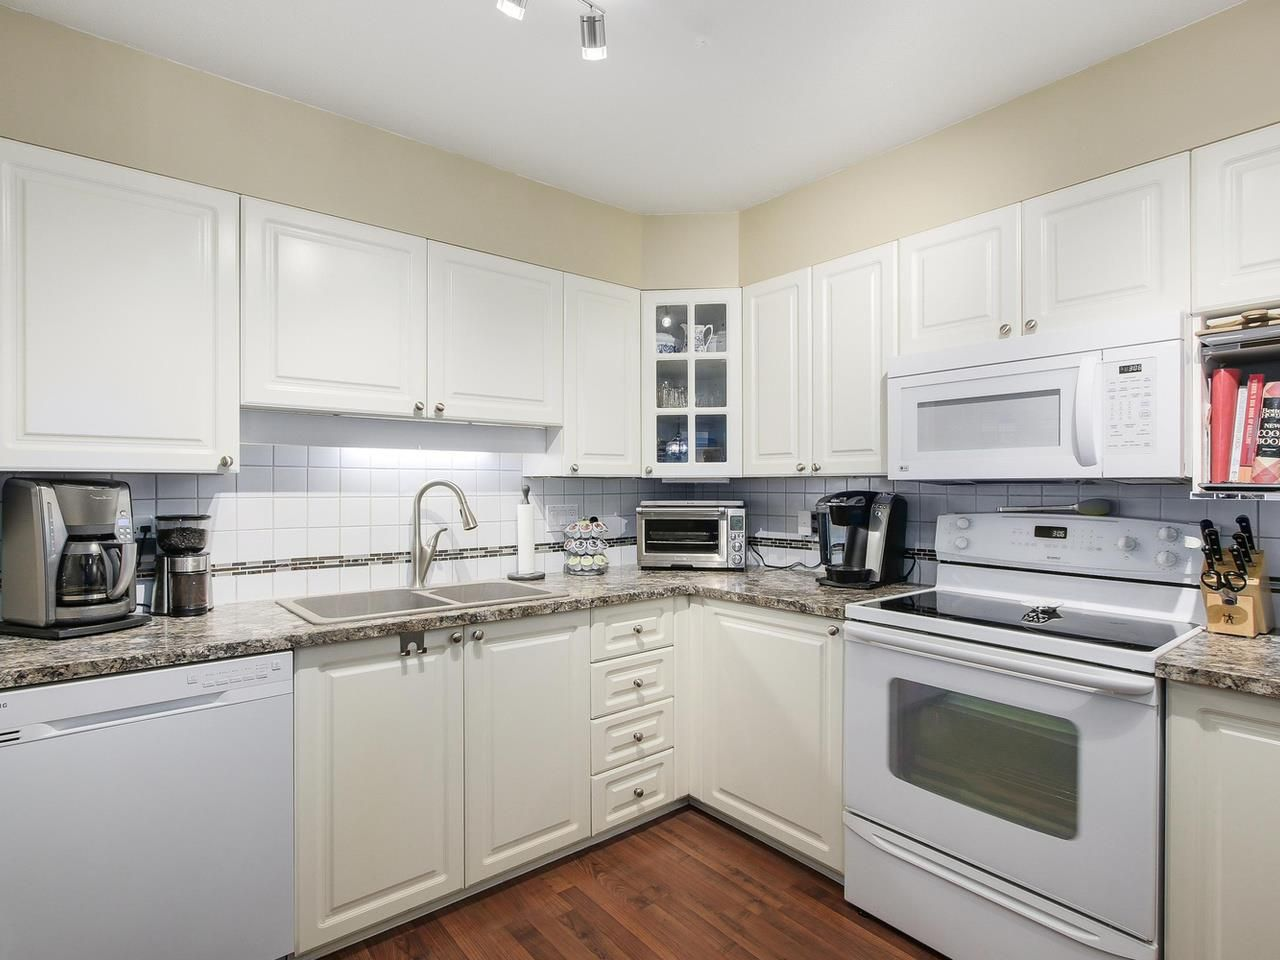 """Photo 6: Photos: 209 1575 BEST Street: White Rock Condo for sale in """"THE EMBASSY"""" (South Surrey White Rock)  : MLS®# R2151526"""